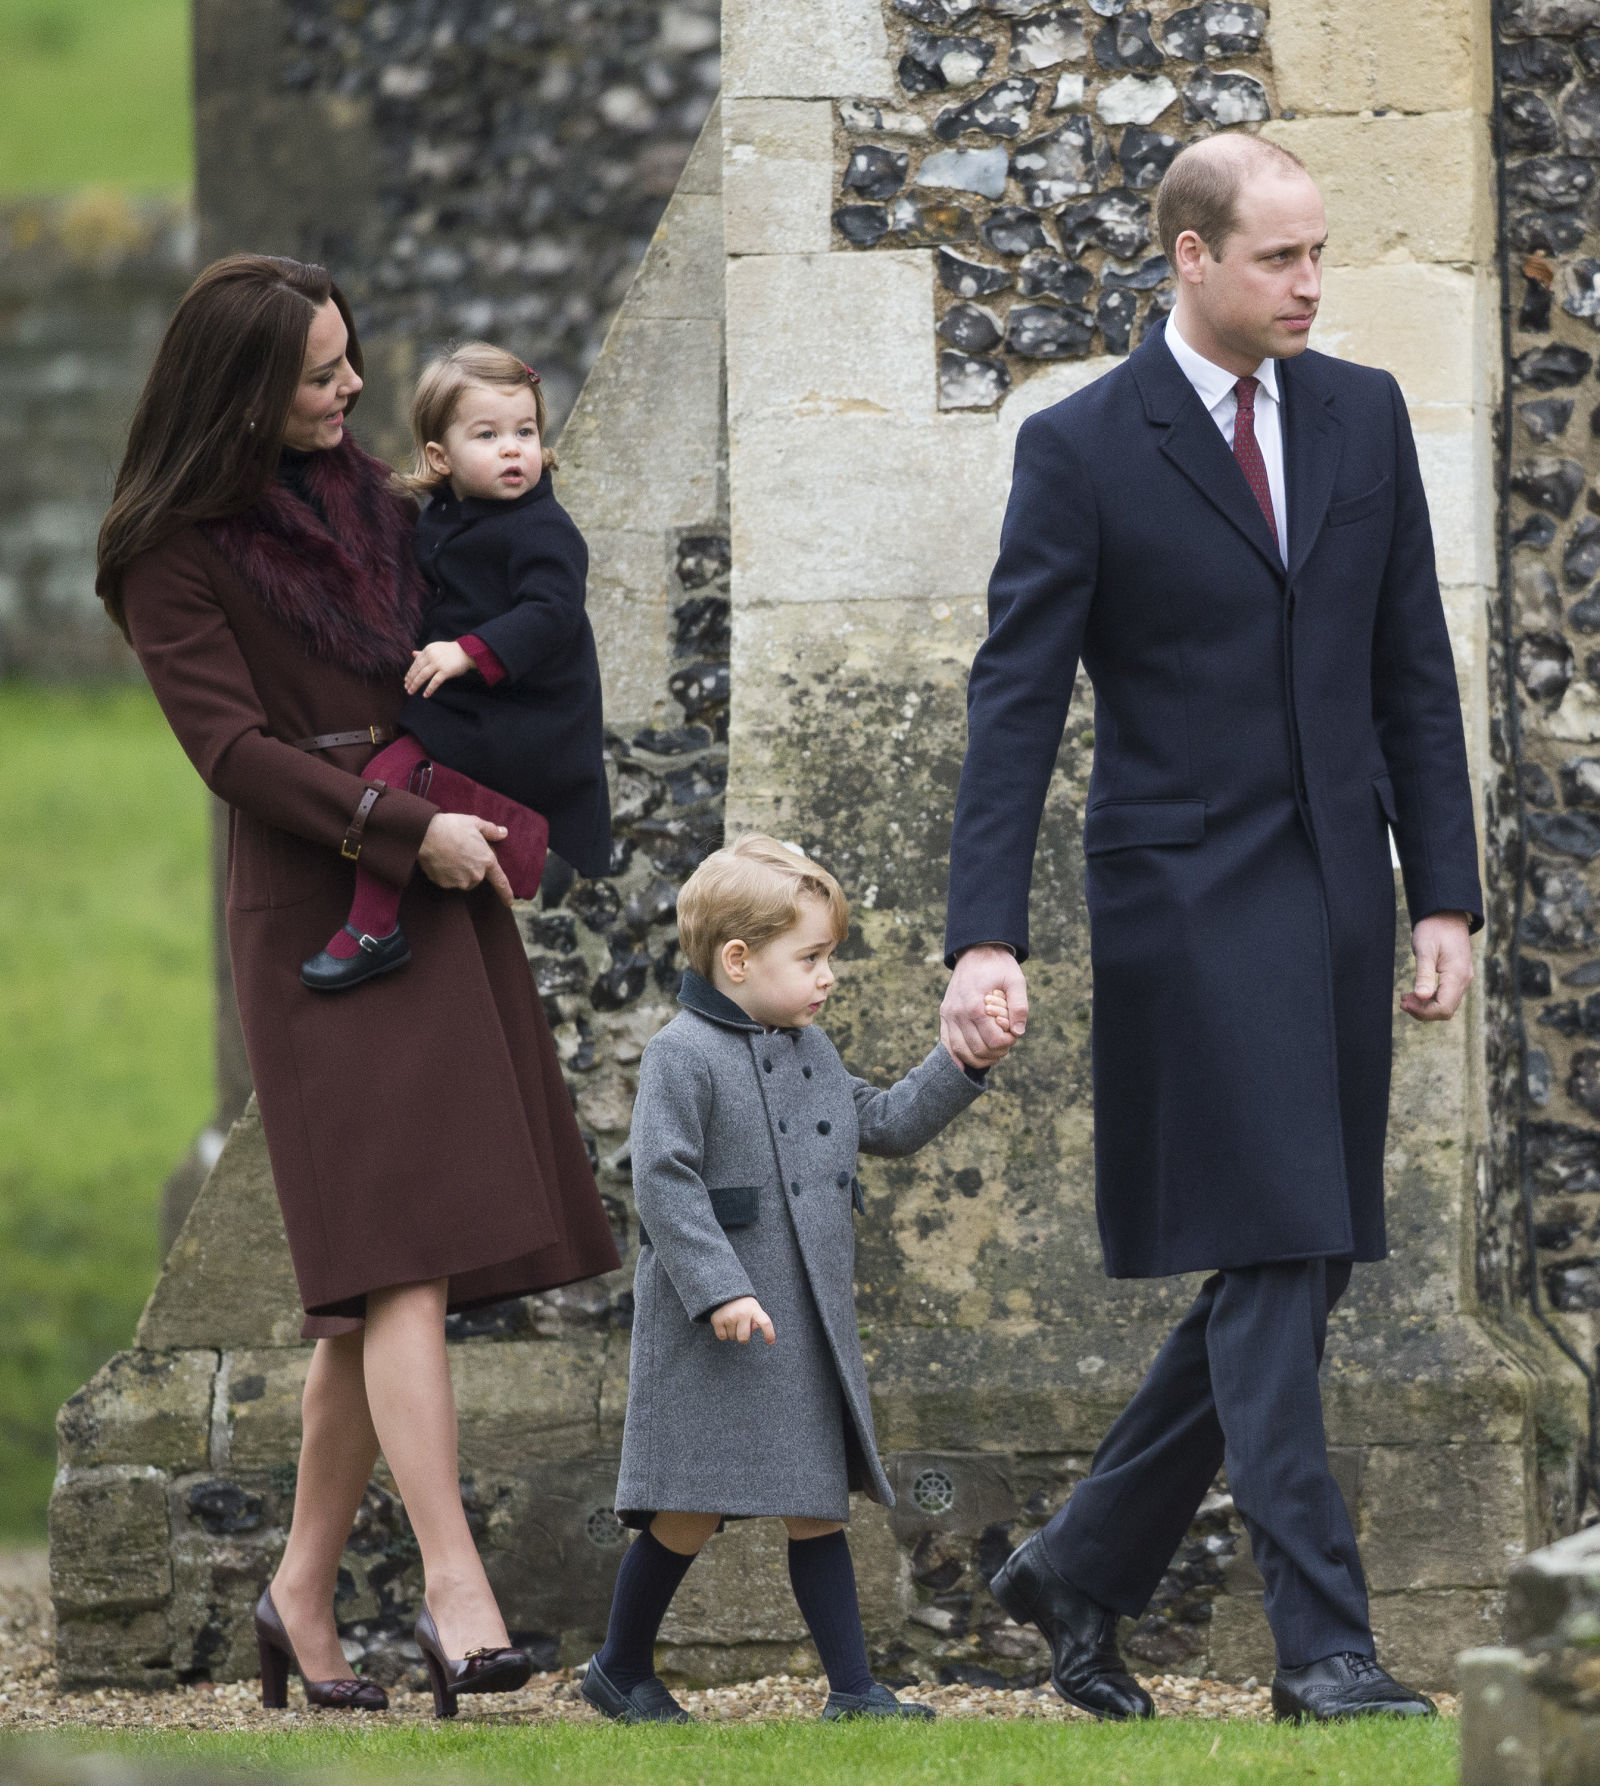 Prince George and Princess Charlotte Elizabeth Diana Photo (C) GETTY IMAGES